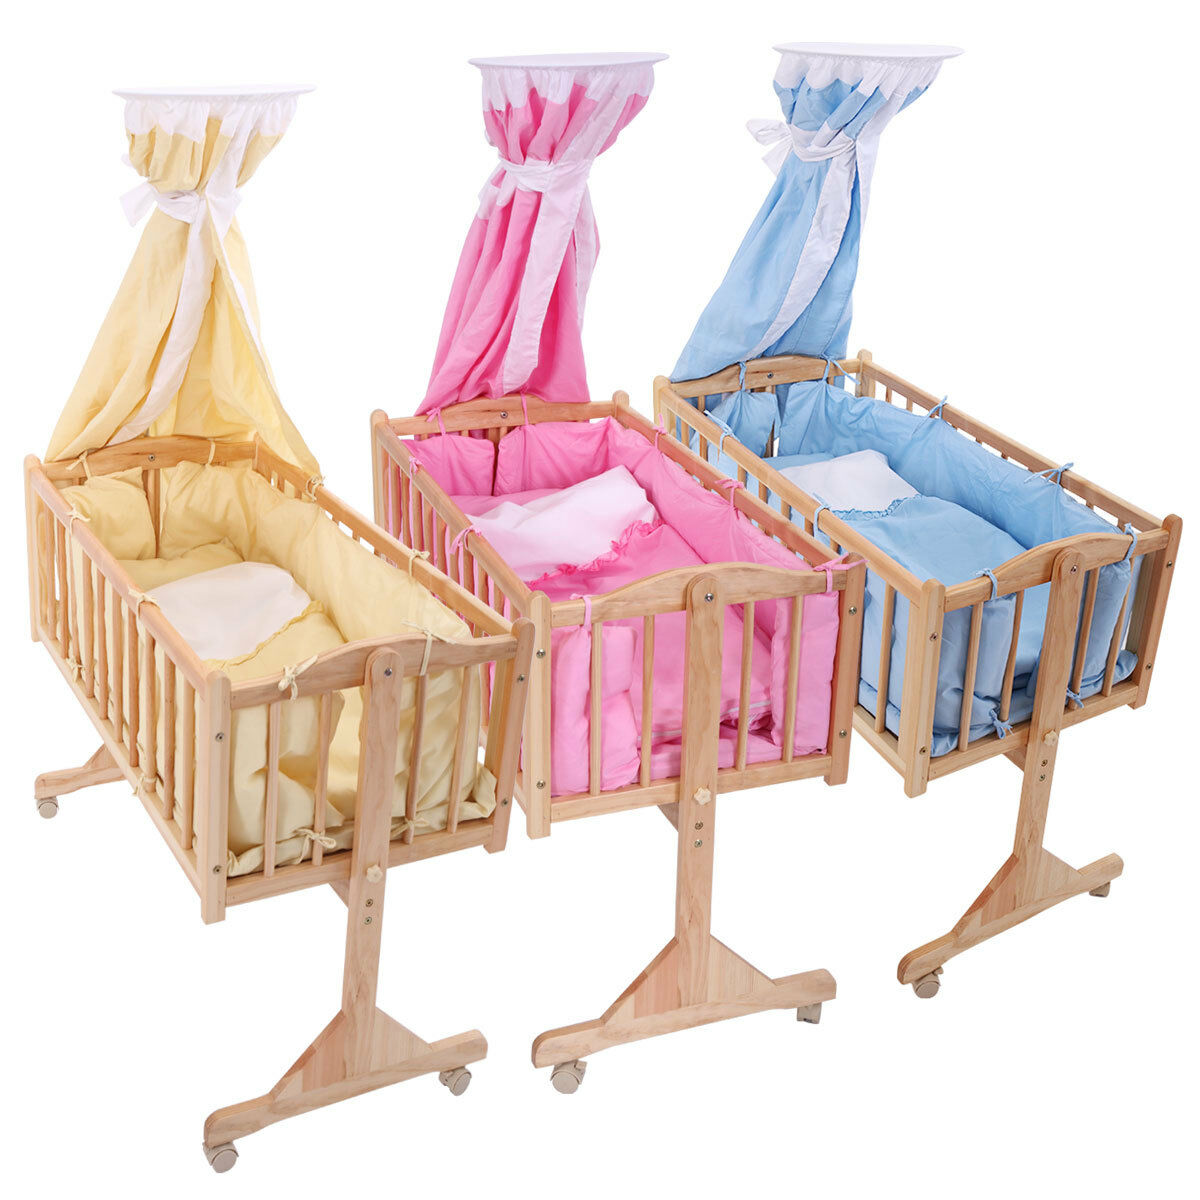 Pine Wood Newborn Baby Toddler Bed Cradle Nursery Furniture